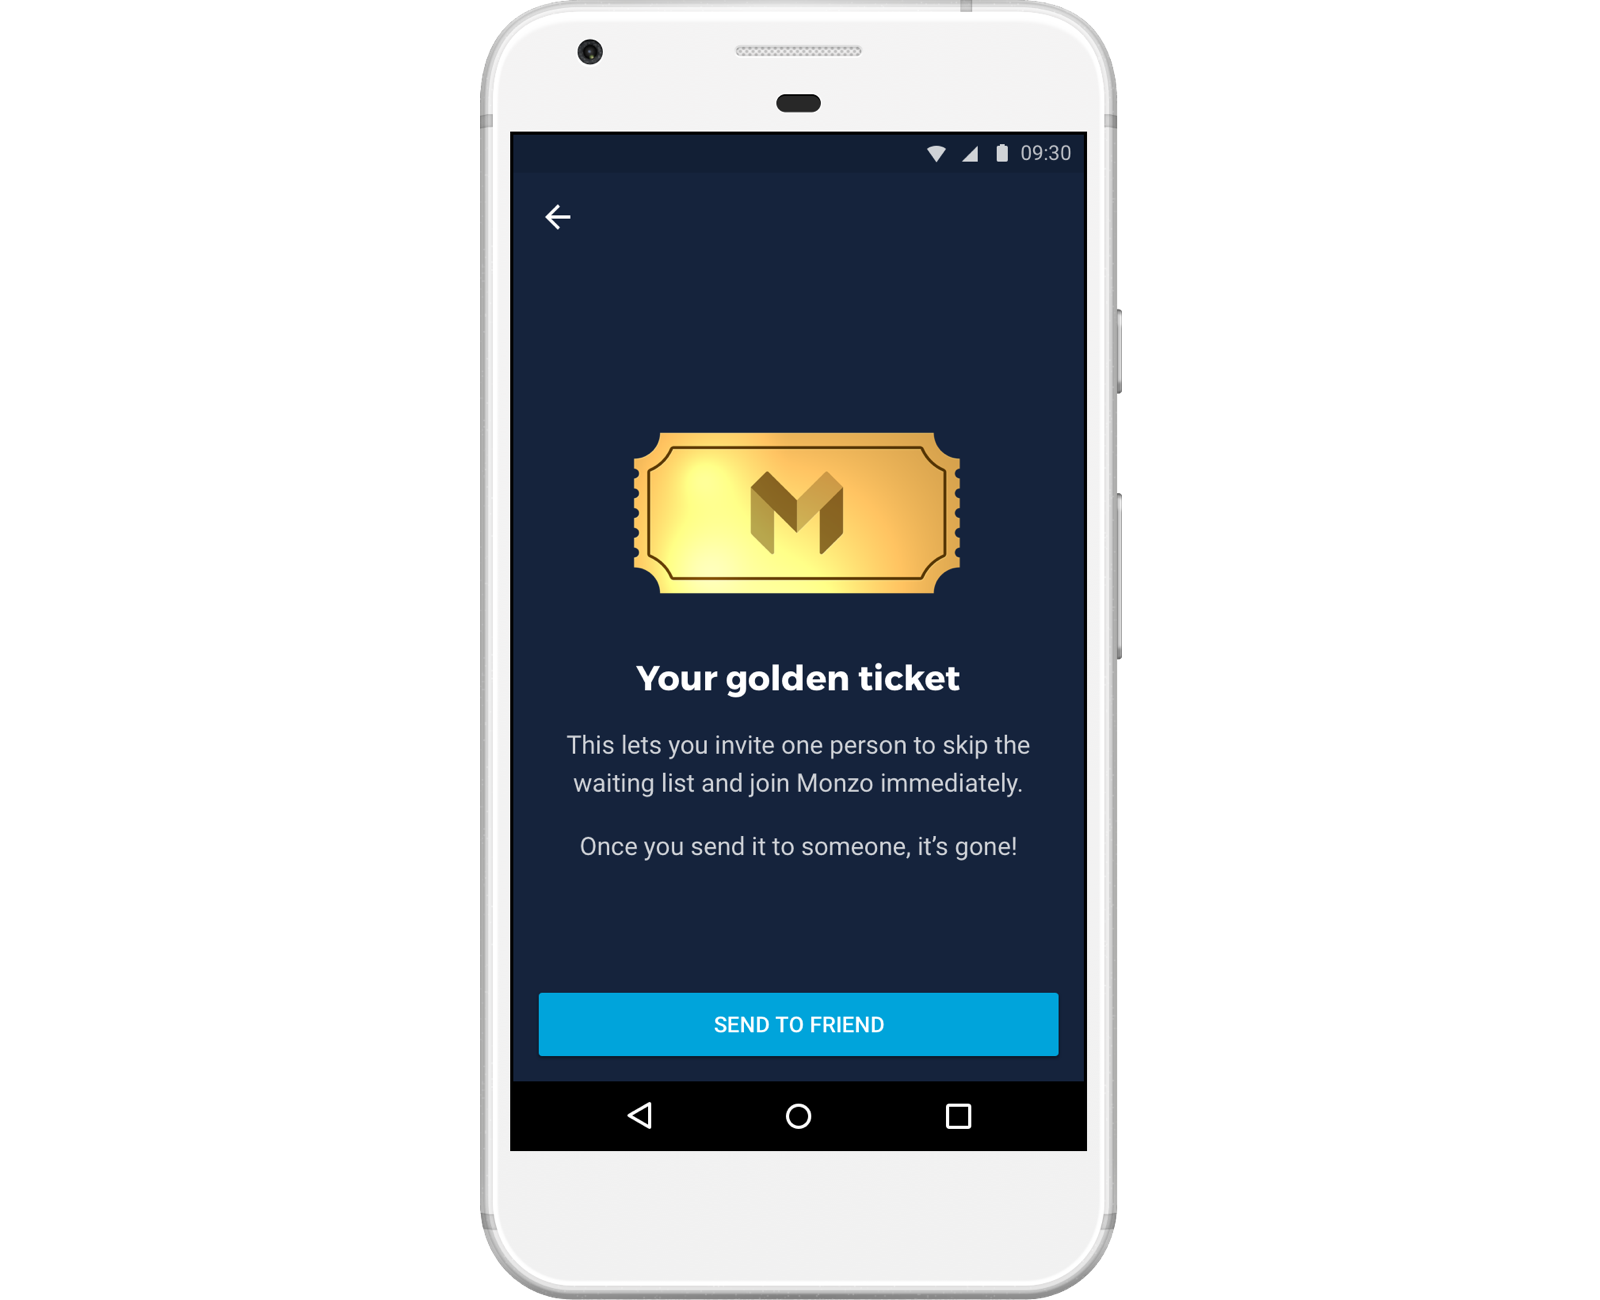 Monzo Golden Ticket